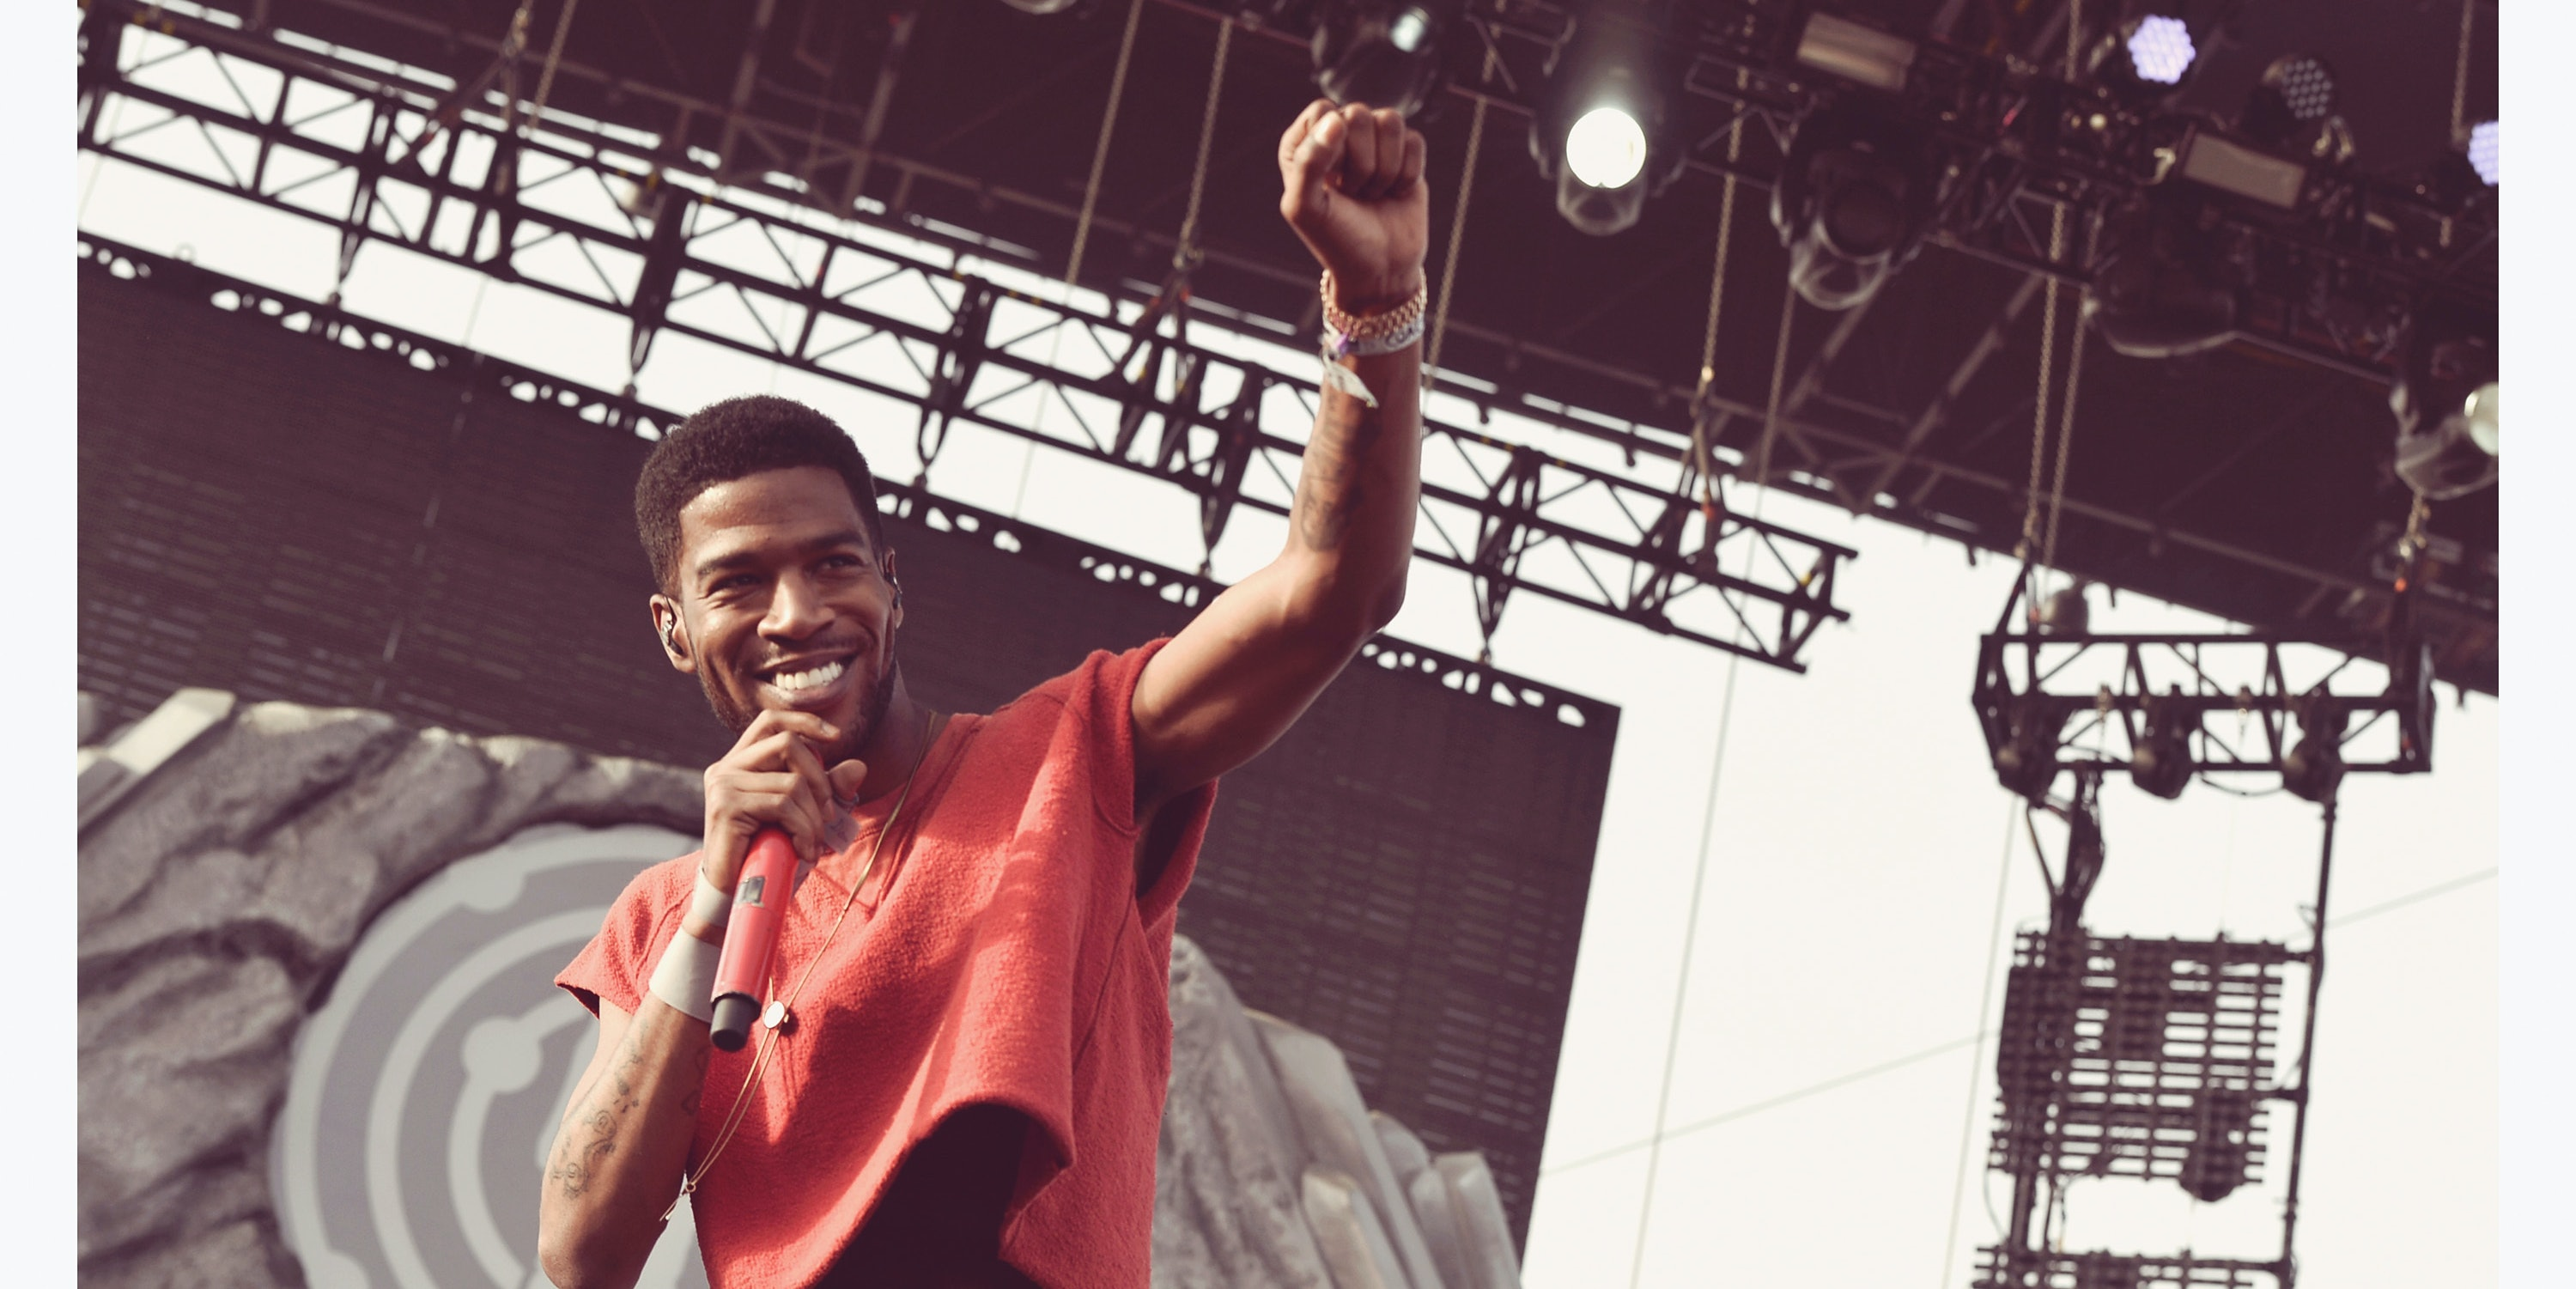 INDIO, CA - APRIL 12:  (EDITORS NOTE: Image was processed using Digital Filters) Rapper Kid Cudi performs onstage during day 2 of the 2014 Coachella Valley Music & Arts Festival at the Empire Polo Club on April 12, 2014 in Indio, California.  (Photo by Kevin Winter/Getty Images for Coachella)